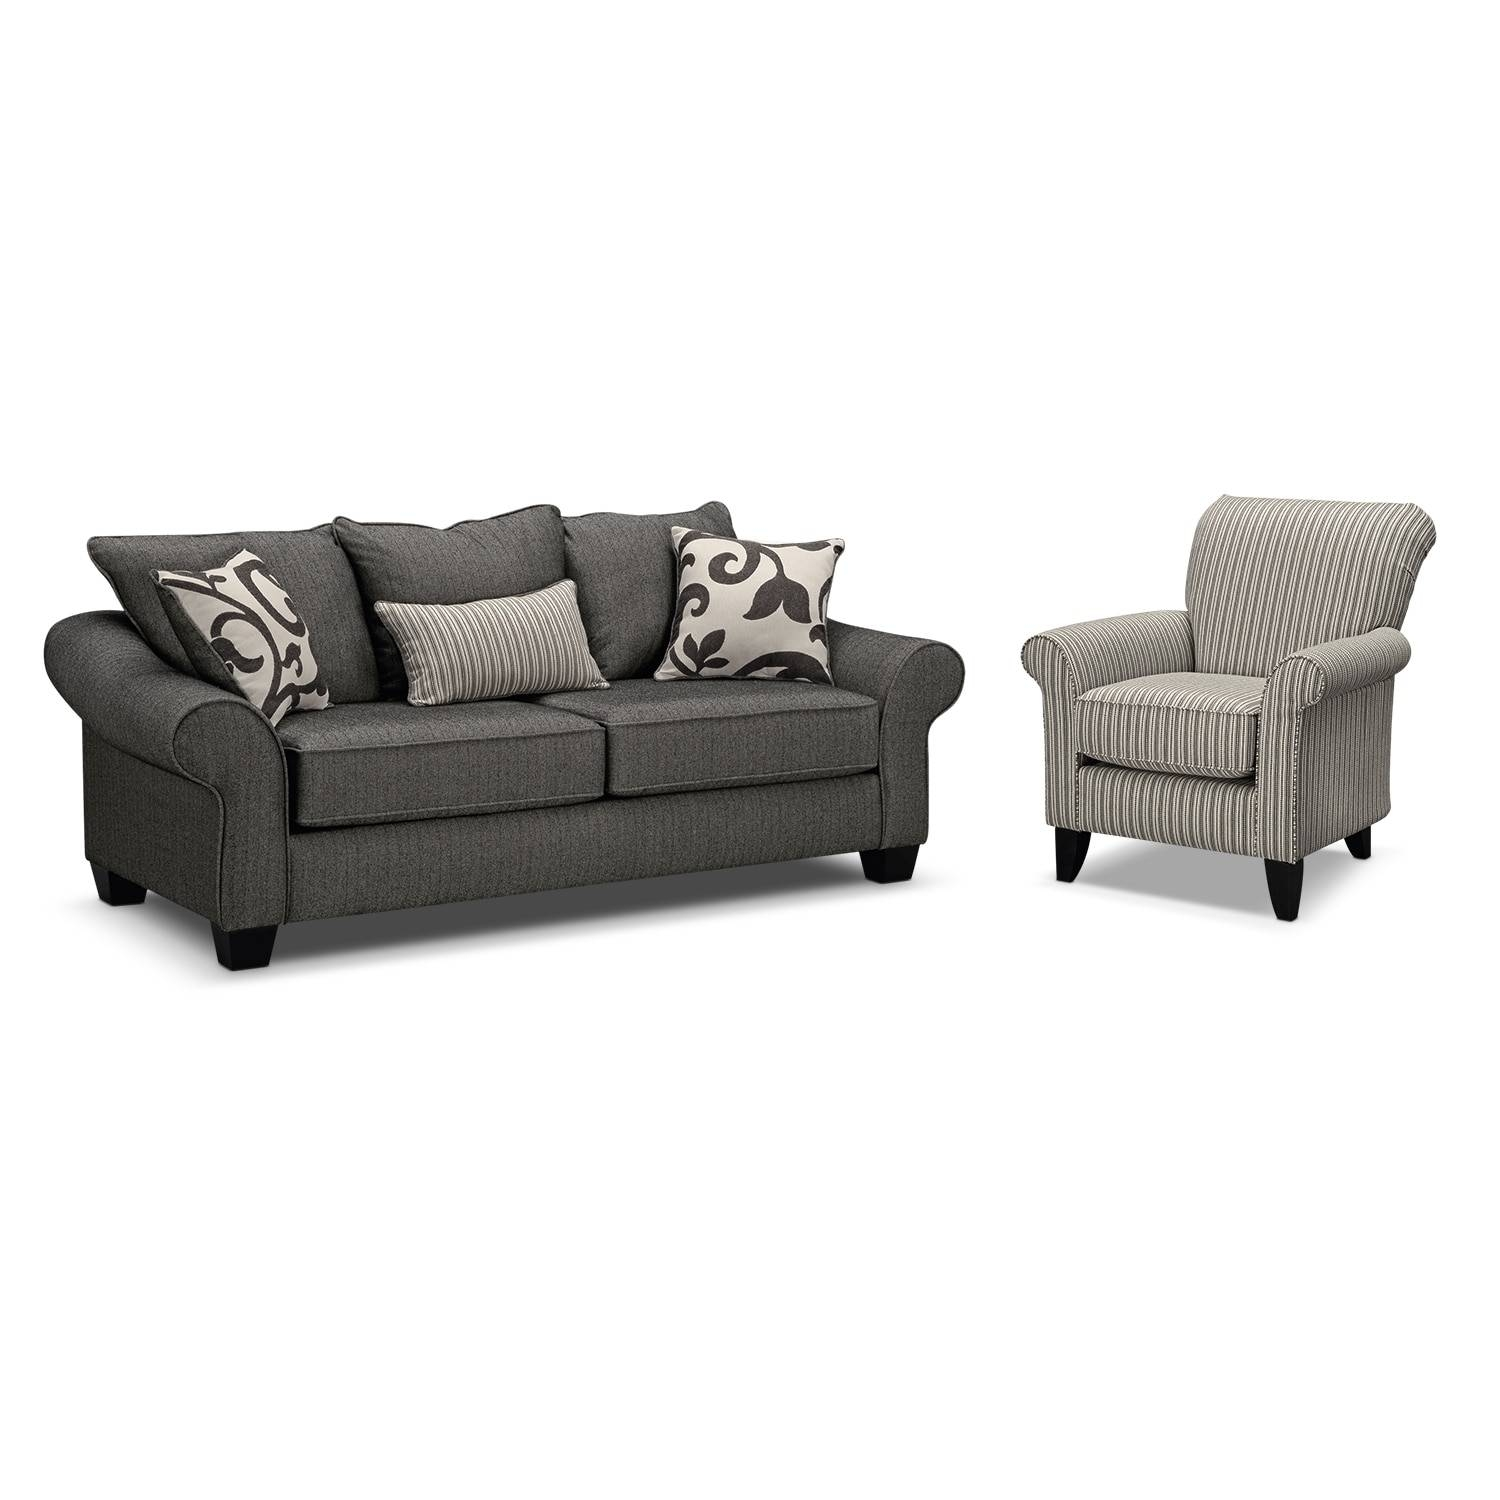 Colette Sofa And Accent Chair Set – Gray | Value City Furniture With Regard To Sofa And Chair Set (View 11 of 30)